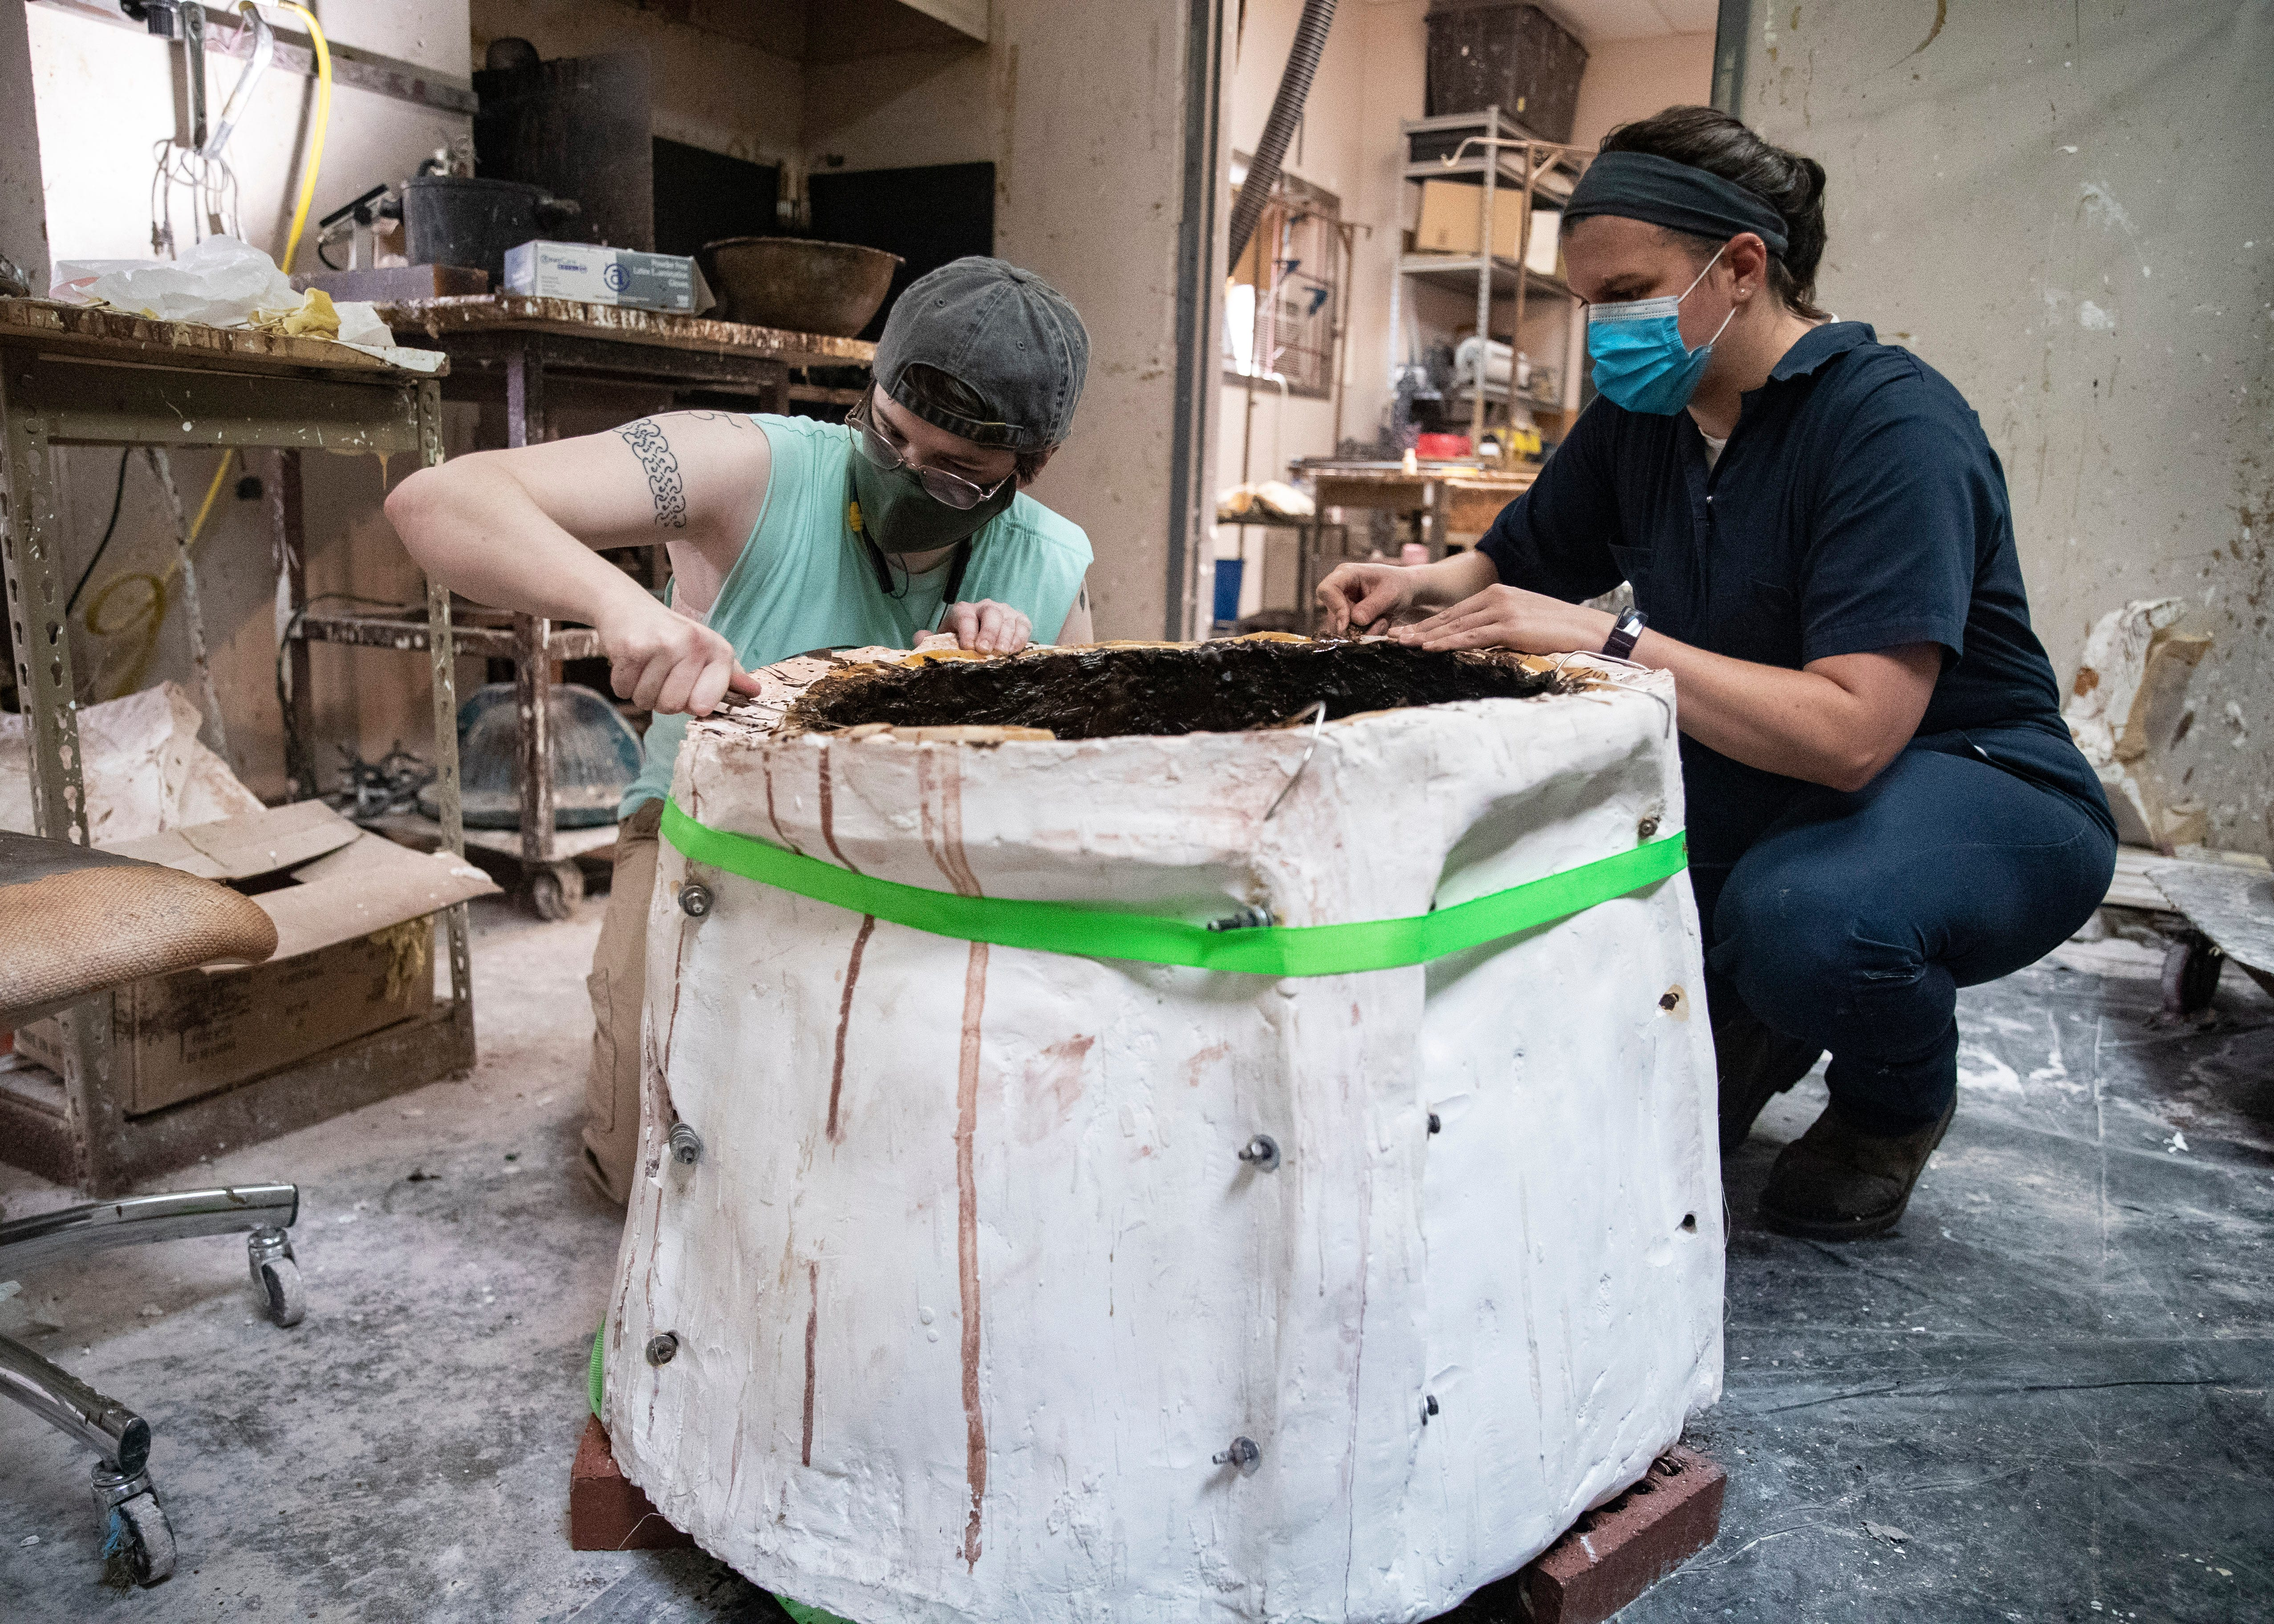 Artisans Emily Hogan and Marda Mesler during the mold making process to create the statue of Ida B. Wells, the African American civil rights advocate and journalist who fought against racism, segregation and lynching, at the Lugar Bronze Foundry in Eads, Tenn., on Tuesday, June 8, 2021.